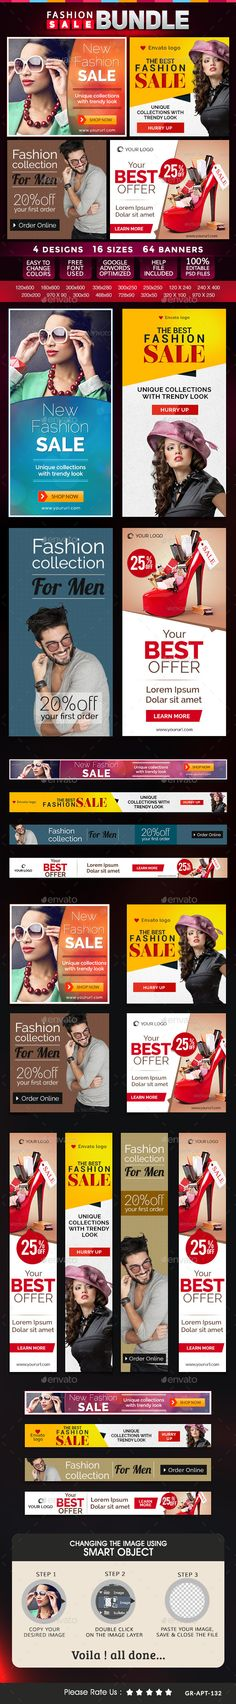 Fashion Banners Bundle - 4 Sets Template PSD | Buy and Download: http://graphicriver.net/item/fashion-banners-bundle-4-sets/9197704?WT.oss_phrase=&WT.oss_rank=3&WT.z_author=doto&WT.ac=search_thumb&ref=ksioks